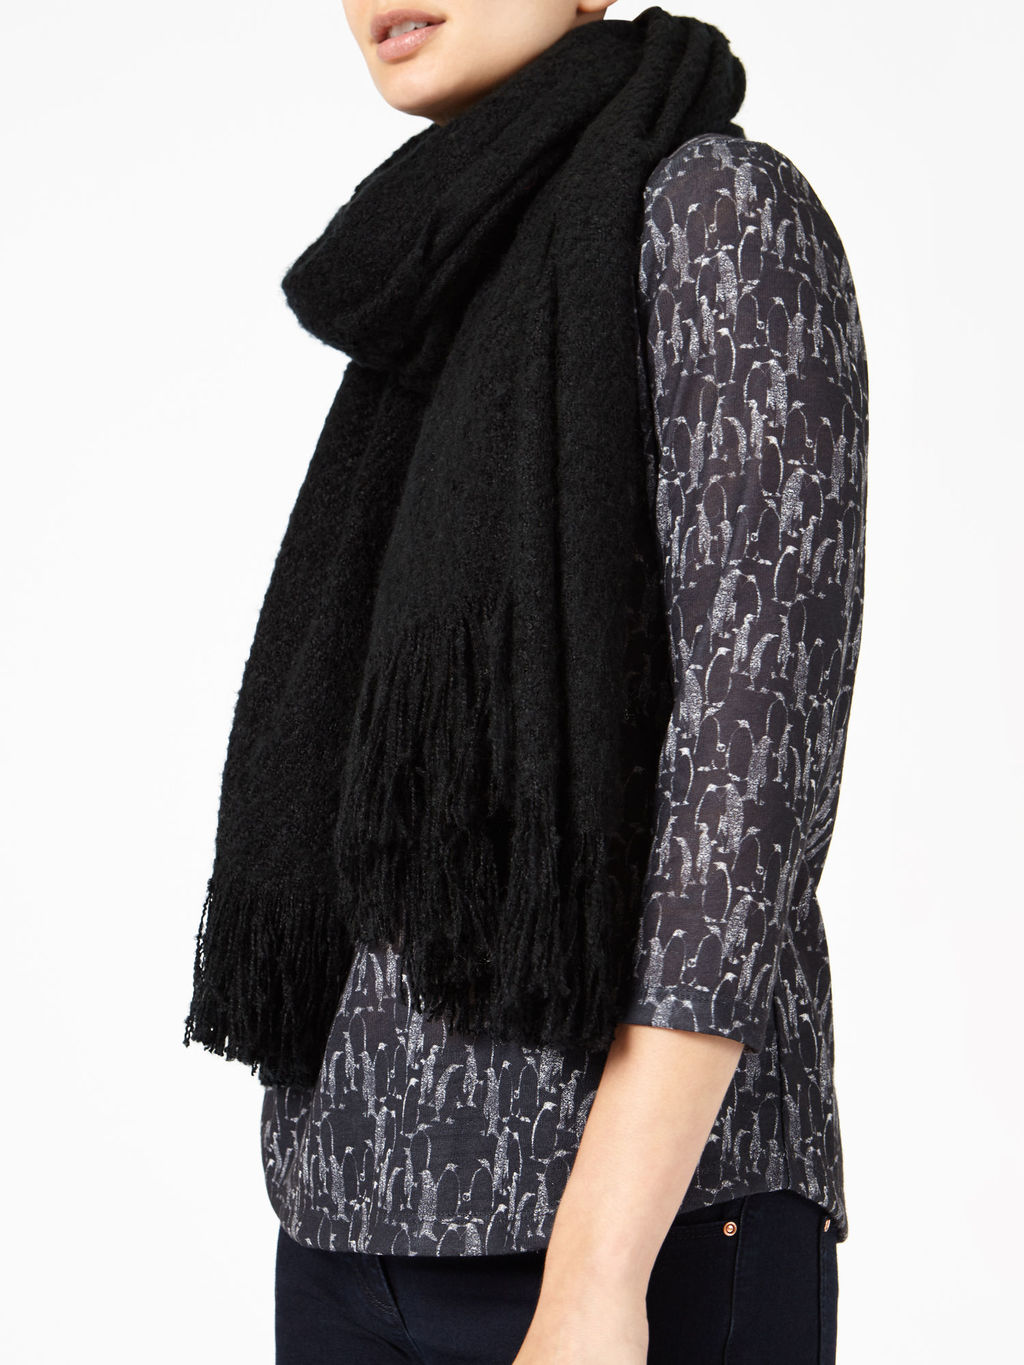 Black Blanket Scarf - predominant colour: black; occasions: casual; type of pattern: standard; style: regular; size: standard; material: fabric; embellishment: fringing; pattern: plain; wardrobe: basic; season: a/w 2016